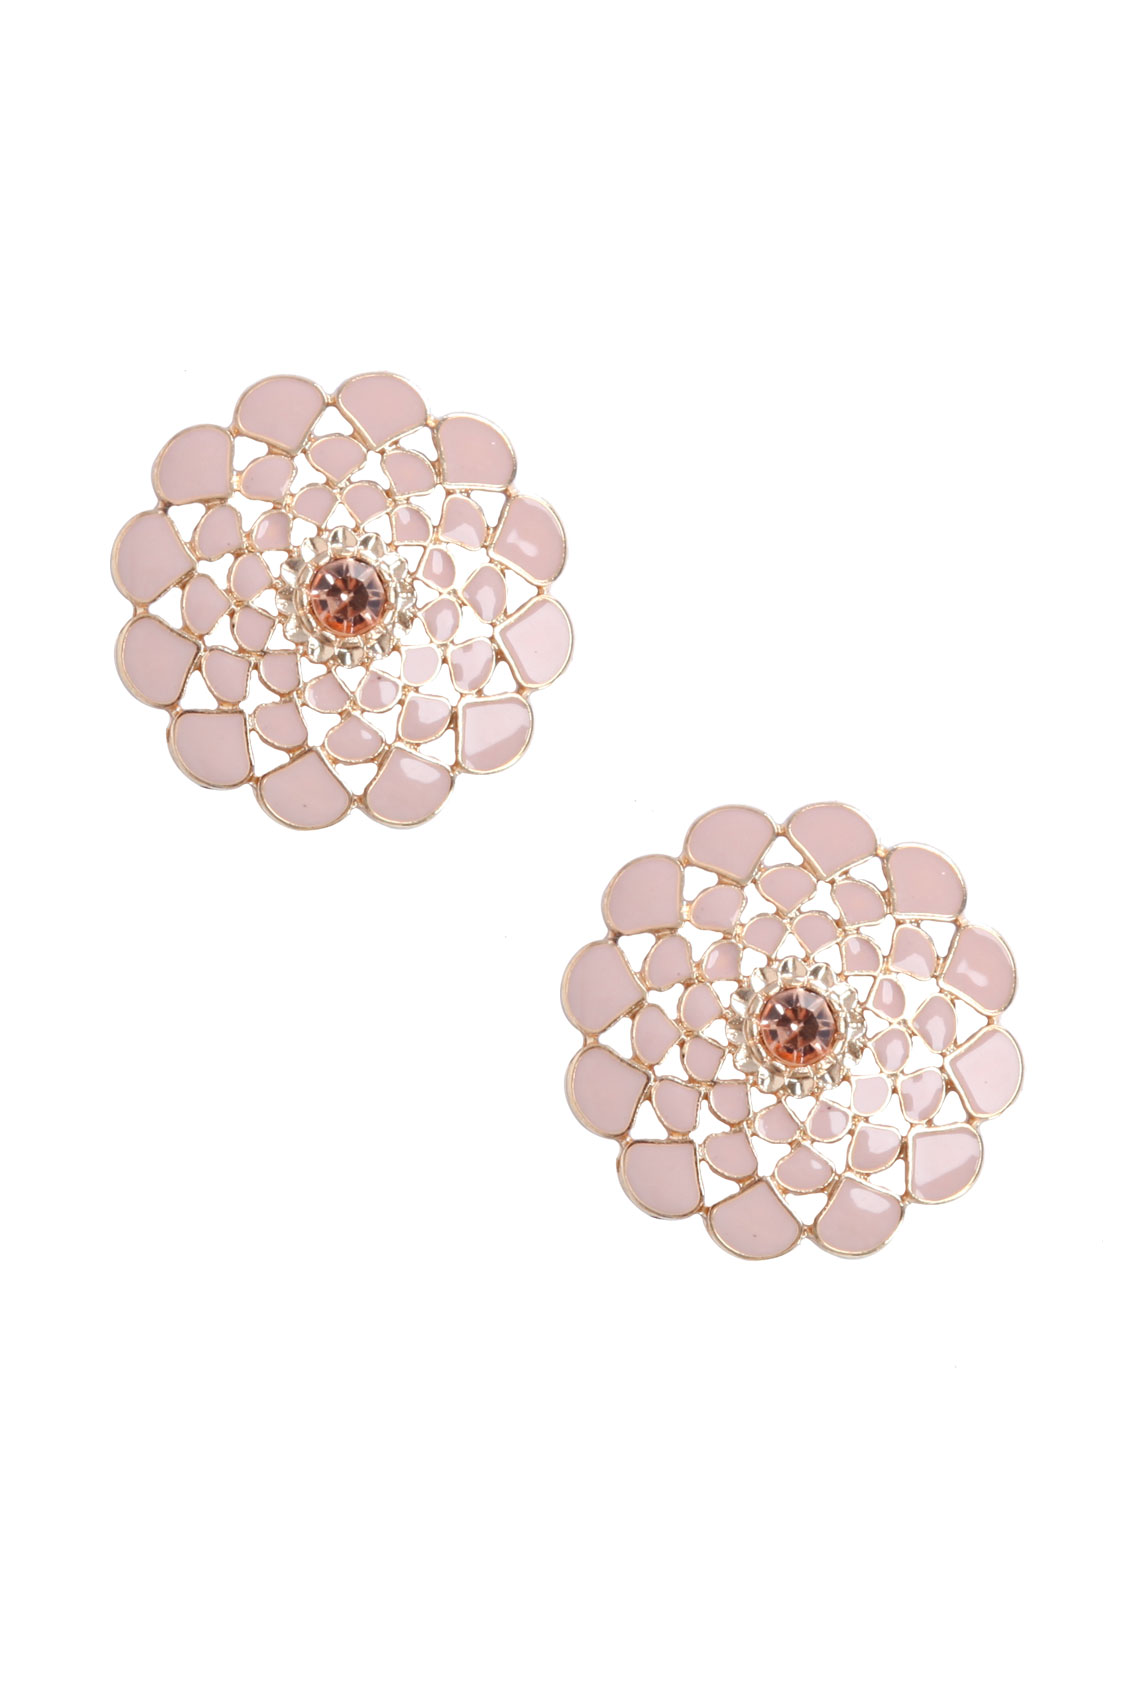 for round zirconia simulated flower post nice earring bijuteria jewelry big stud setting earrings large aliexpress design pave pearl micro women from lotus feminina product store fashion leaf com buy stones cubic with